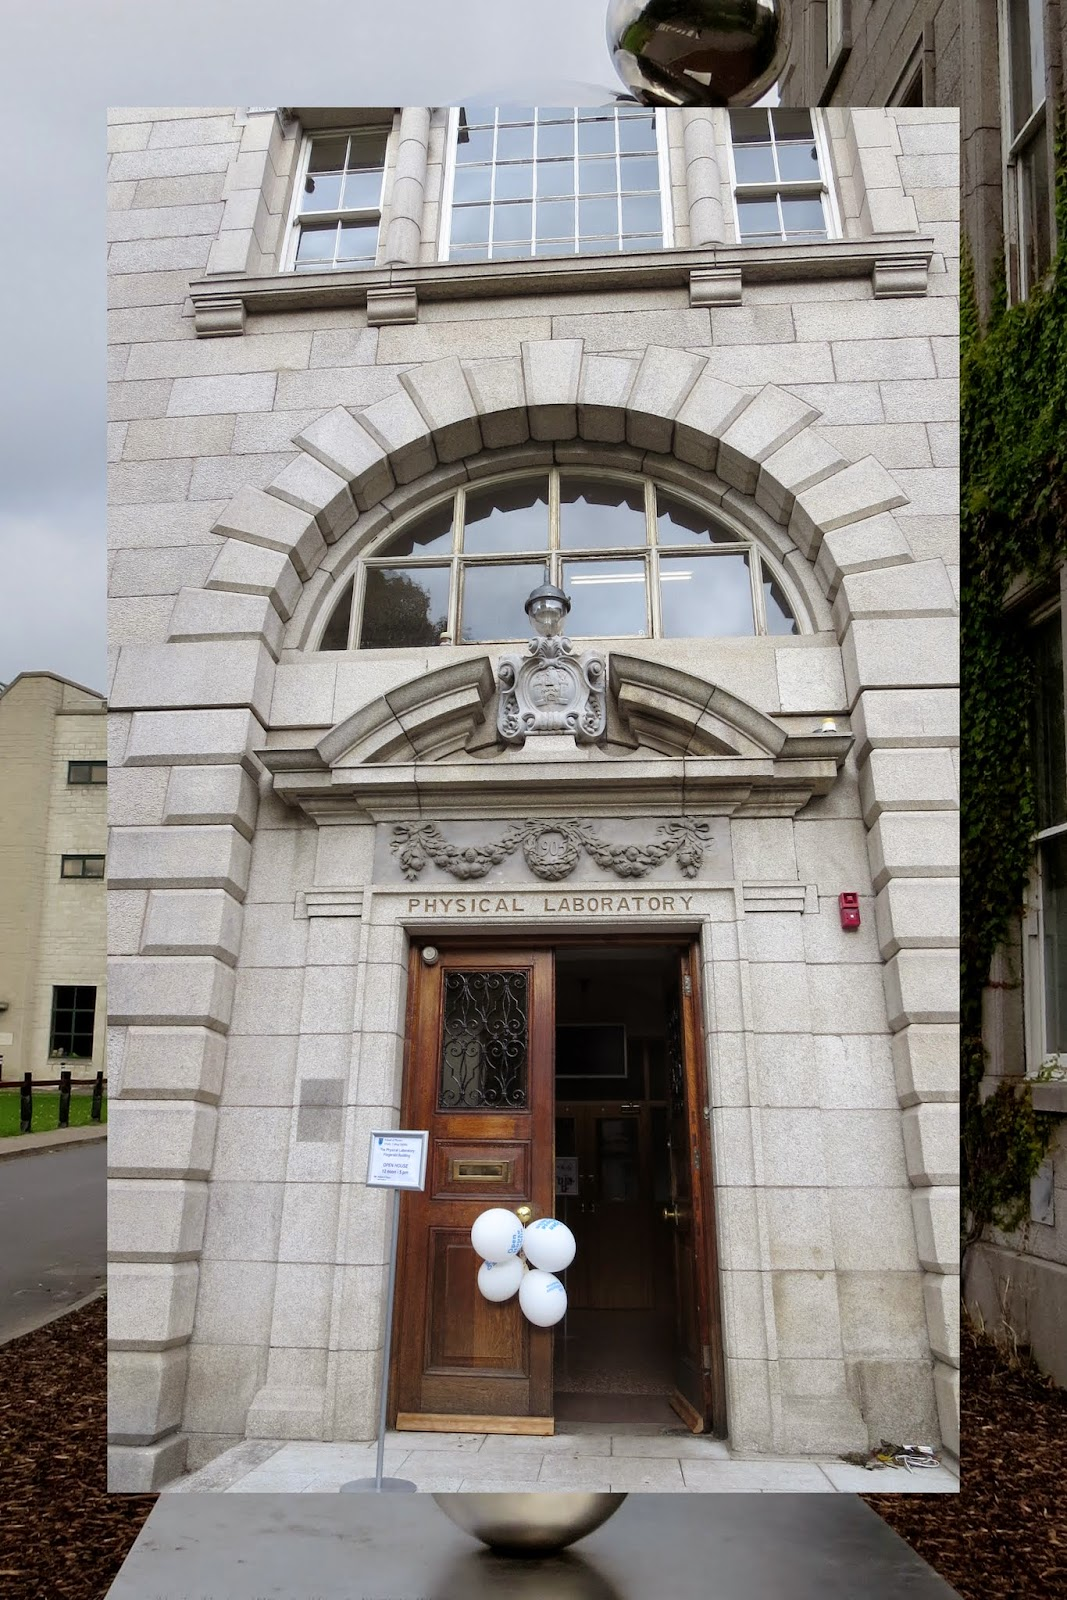 Entrance to Physical Laboratory at Trinity College Dublin